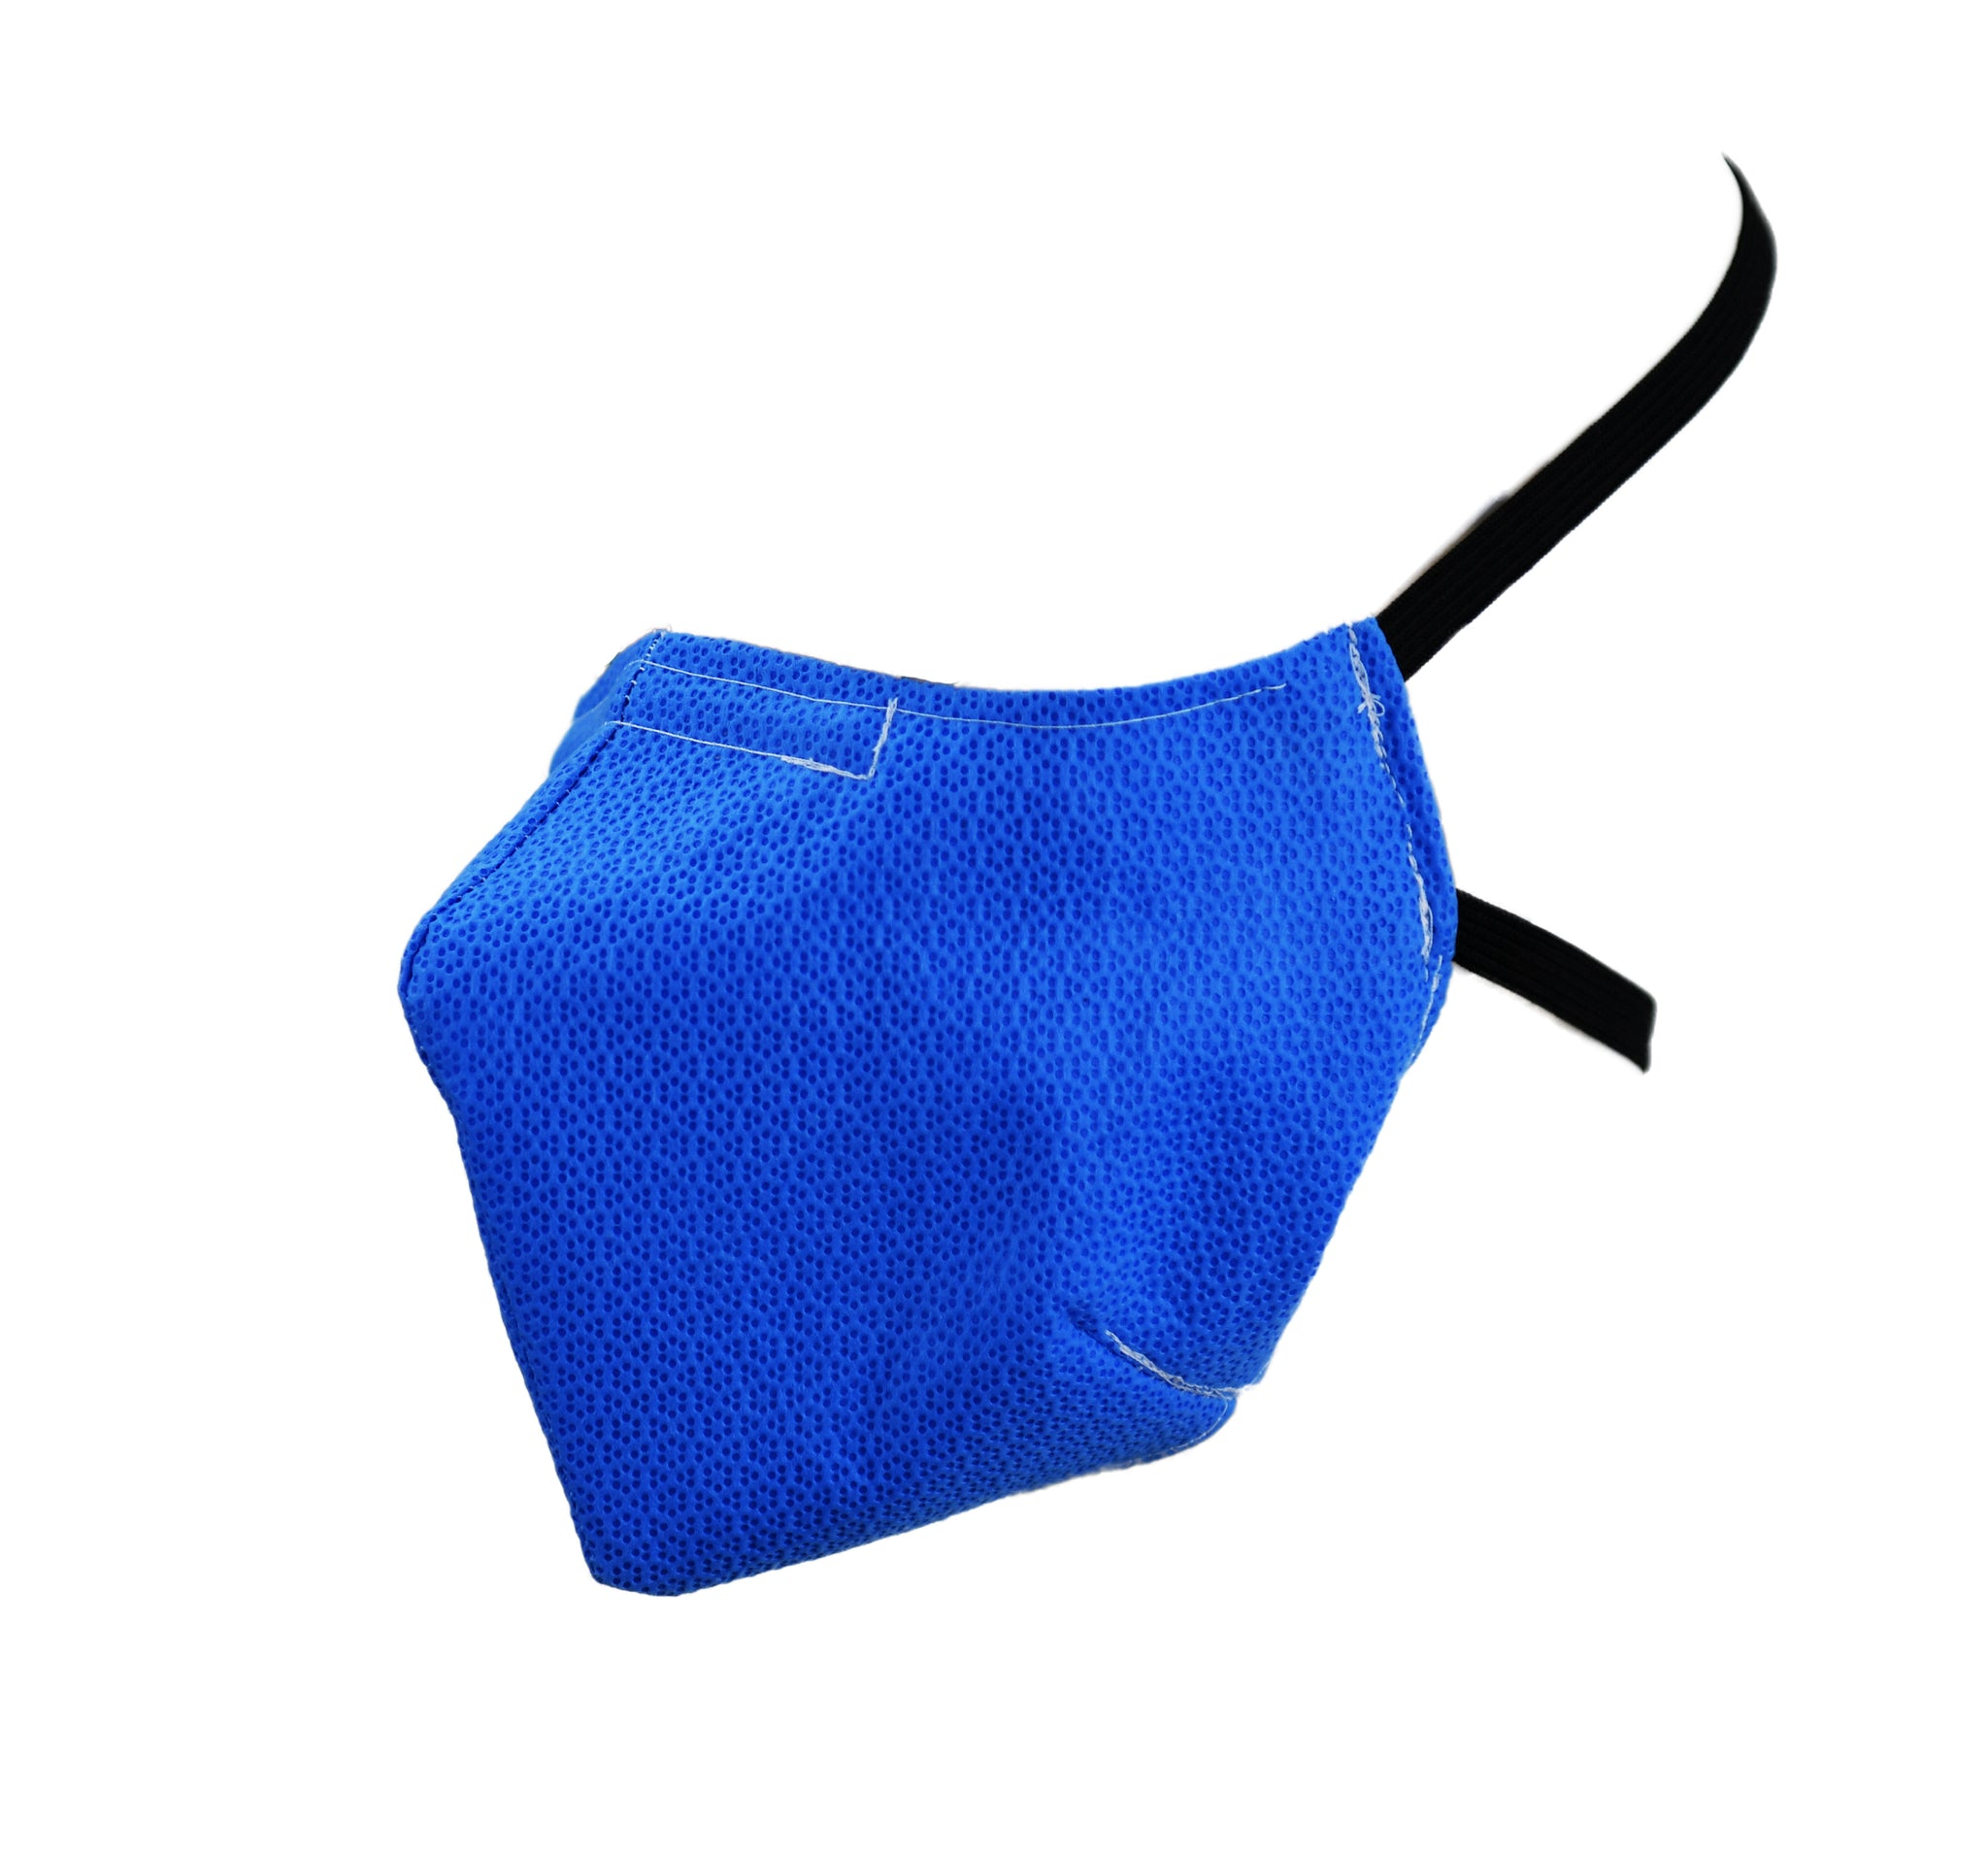 V99 Protective Respirator Face Mask With Fully Adjustable Straps